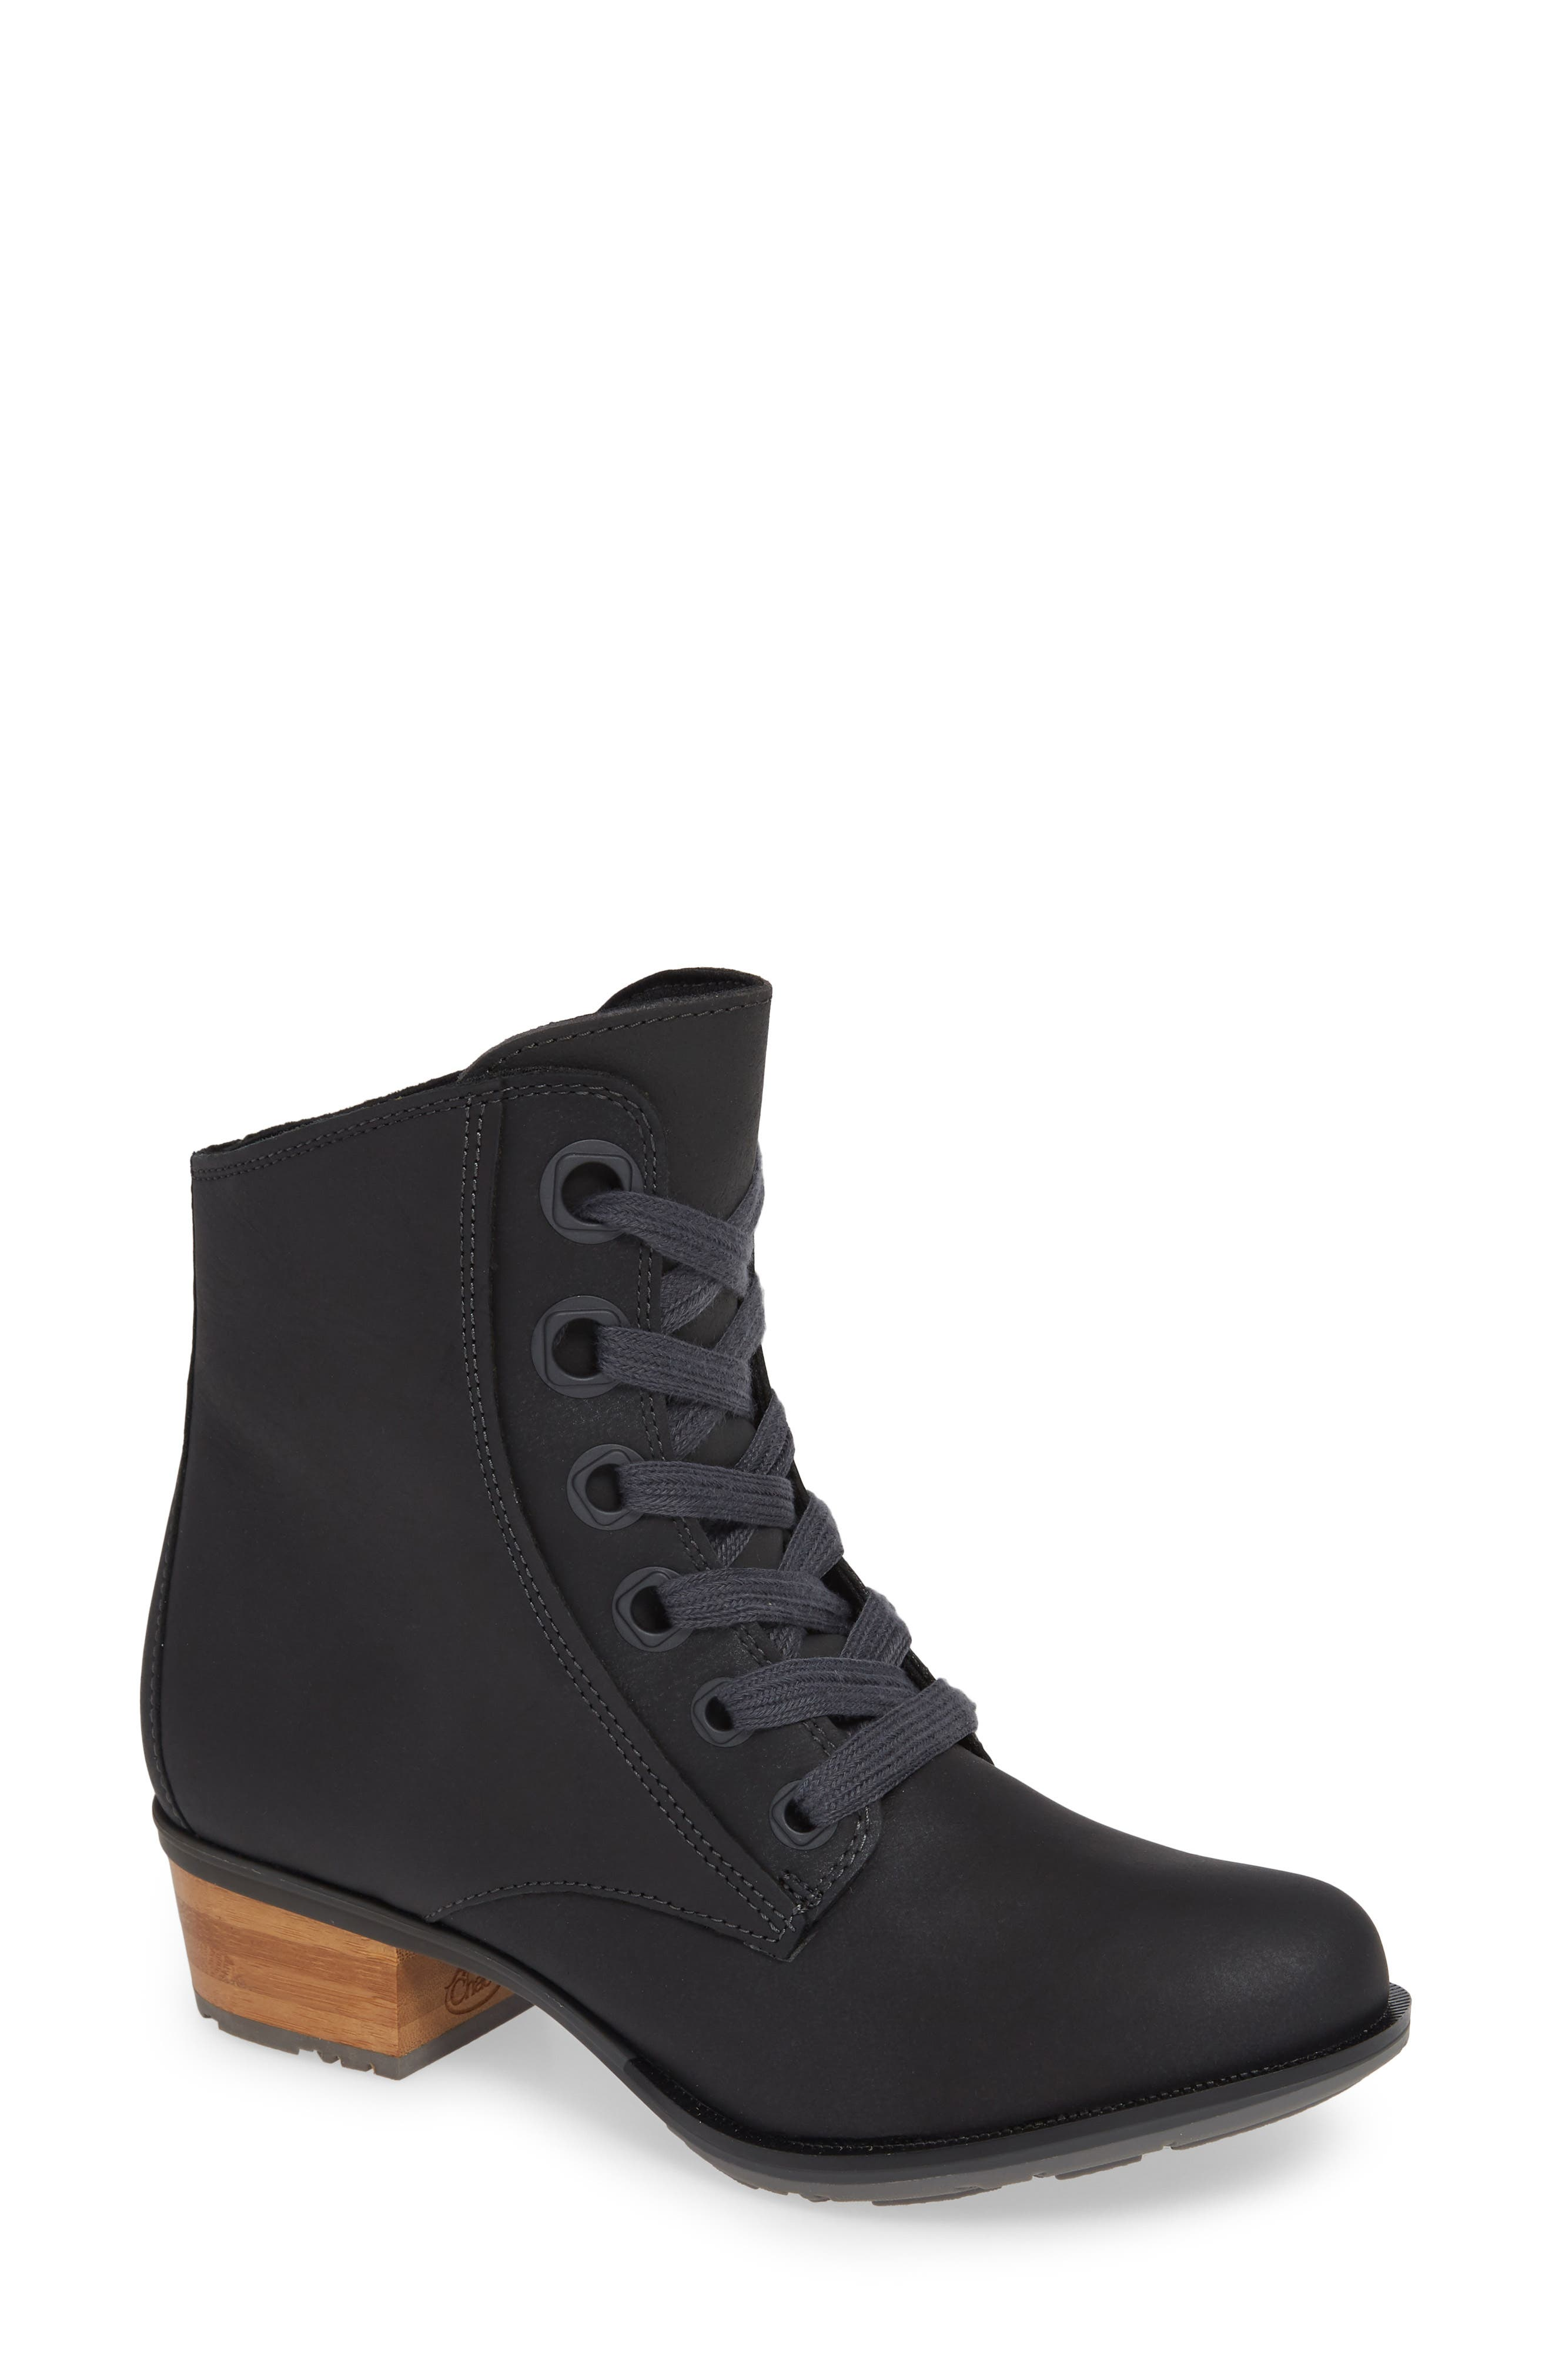 CHACO Cataluna Waterproof Lace-Up Boot, Main, color, BLACK LEATHER